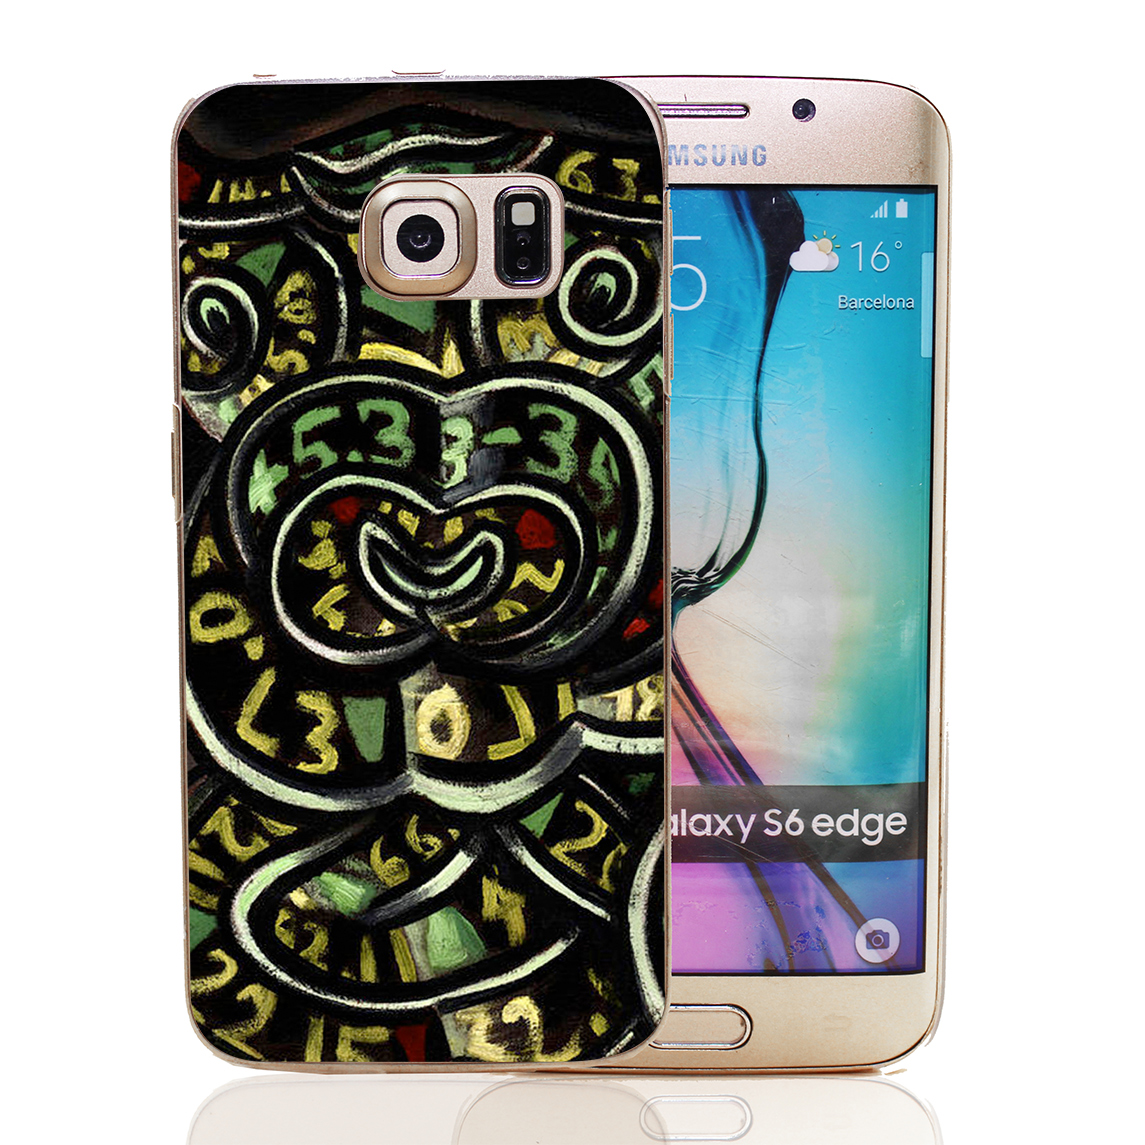 bull market stock market ticker Style Transparent Hard Back Cover for Samsung Galaxy S3 S4 S4 S5 Mini S6 S7 Edge(China (Mainland))